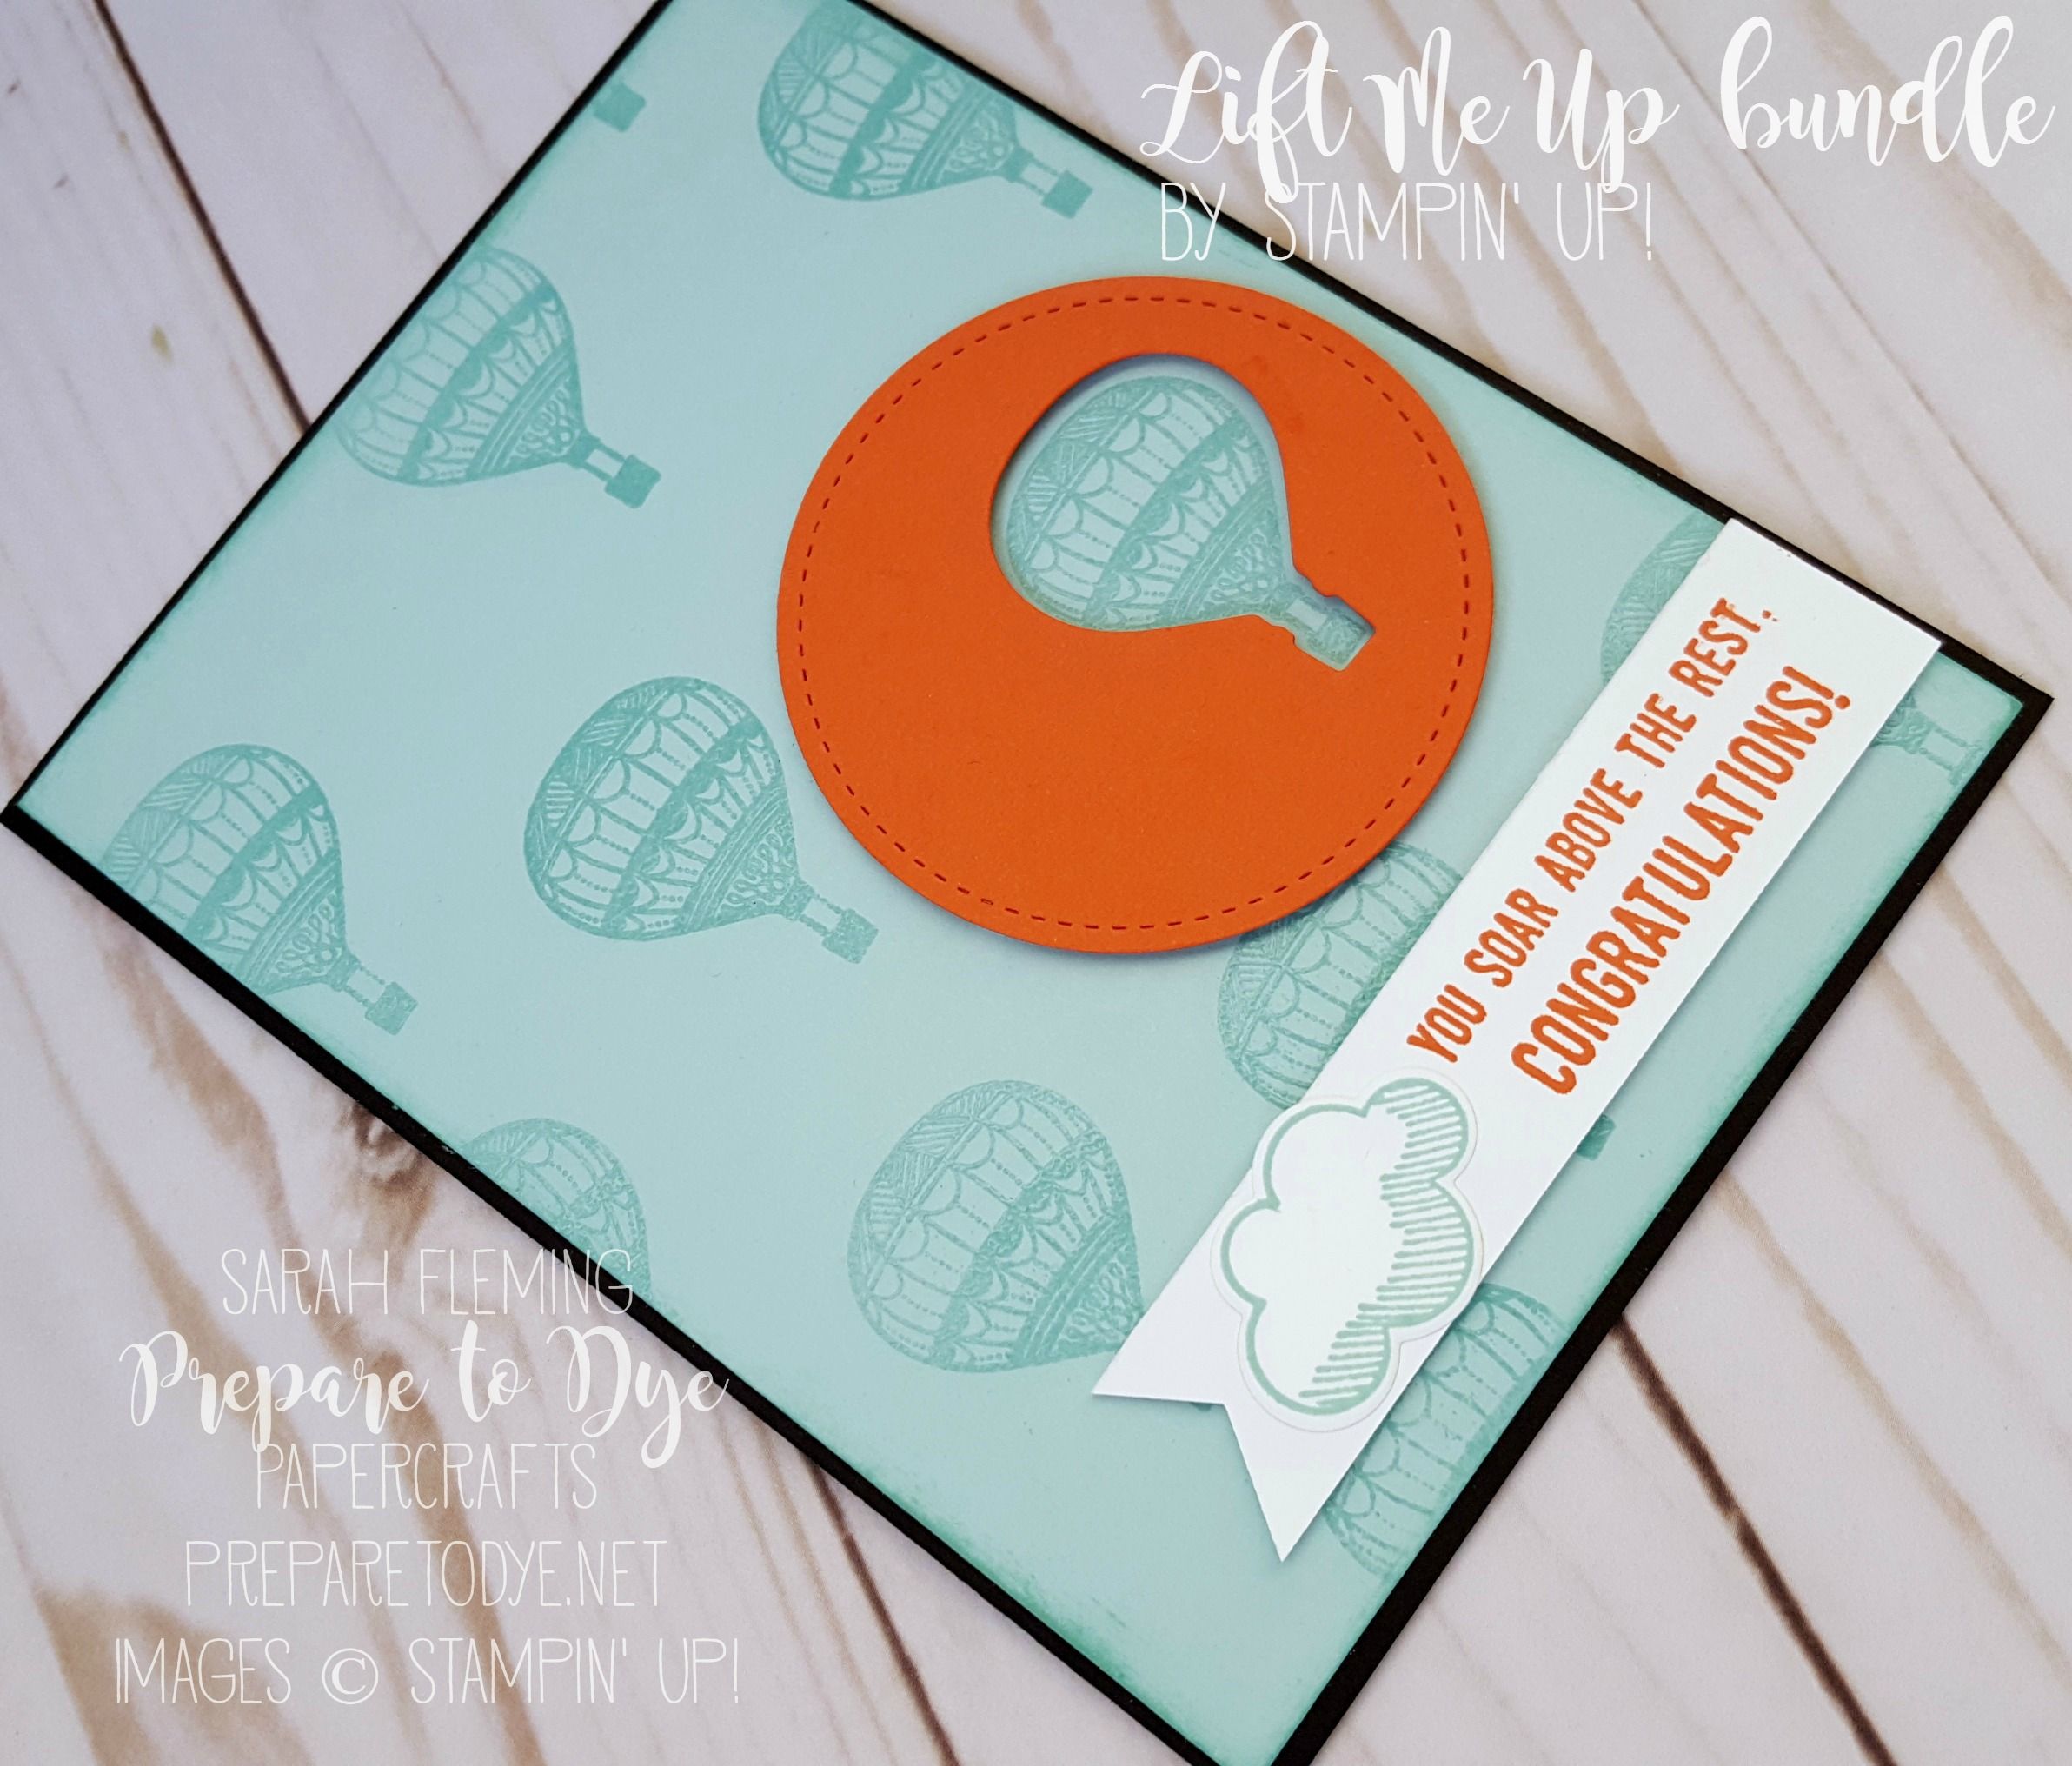 Stampin' Up! Lift Me Up bundle - Sarah Fleming - Prepare to Dye Papercrafts